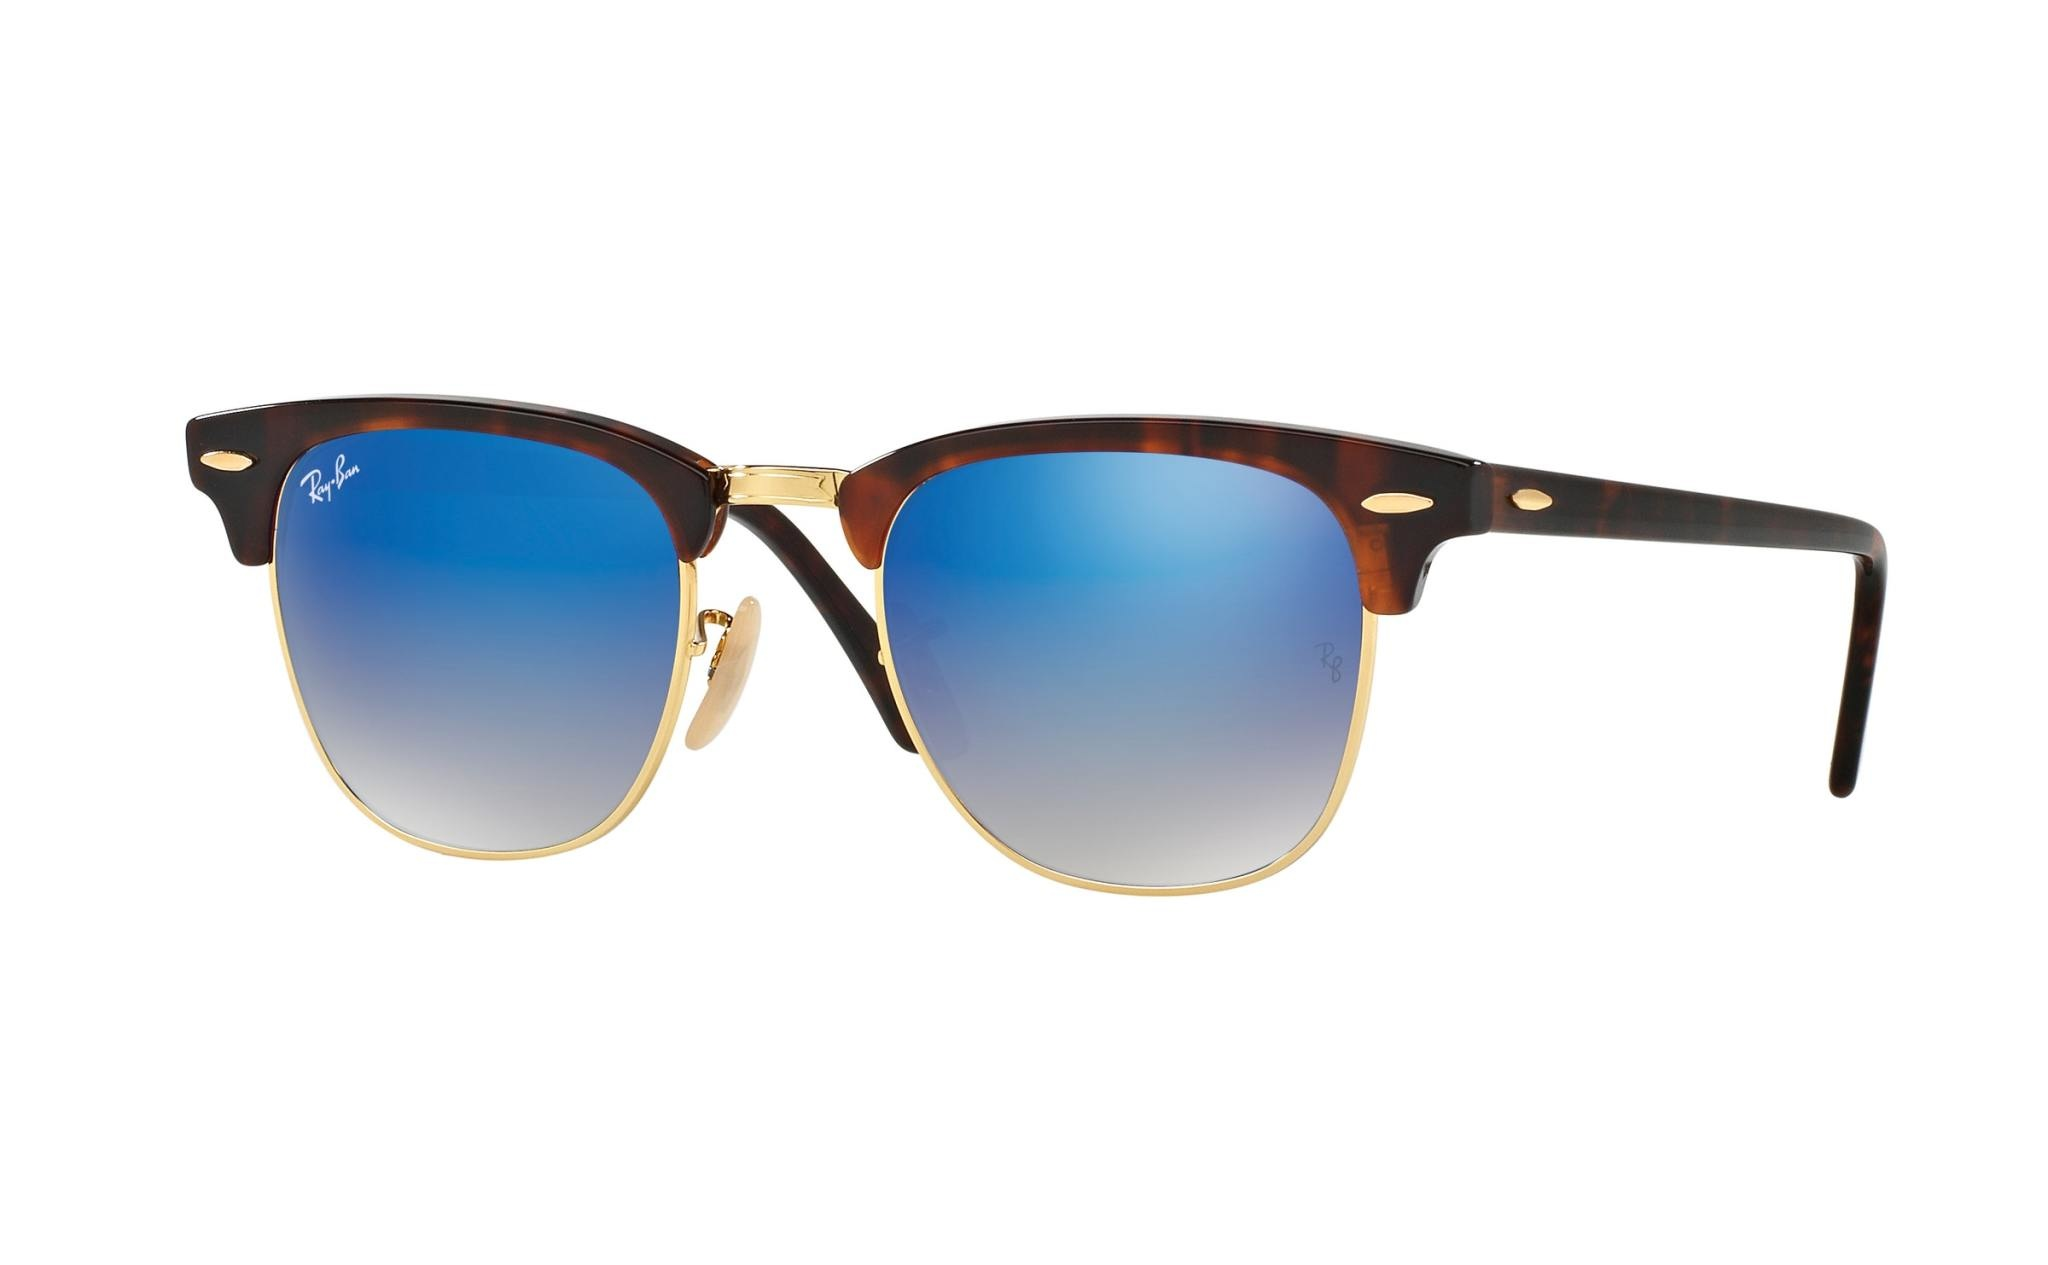 49 Ray Ban Clubmaster Flash Lenses Gradient-1